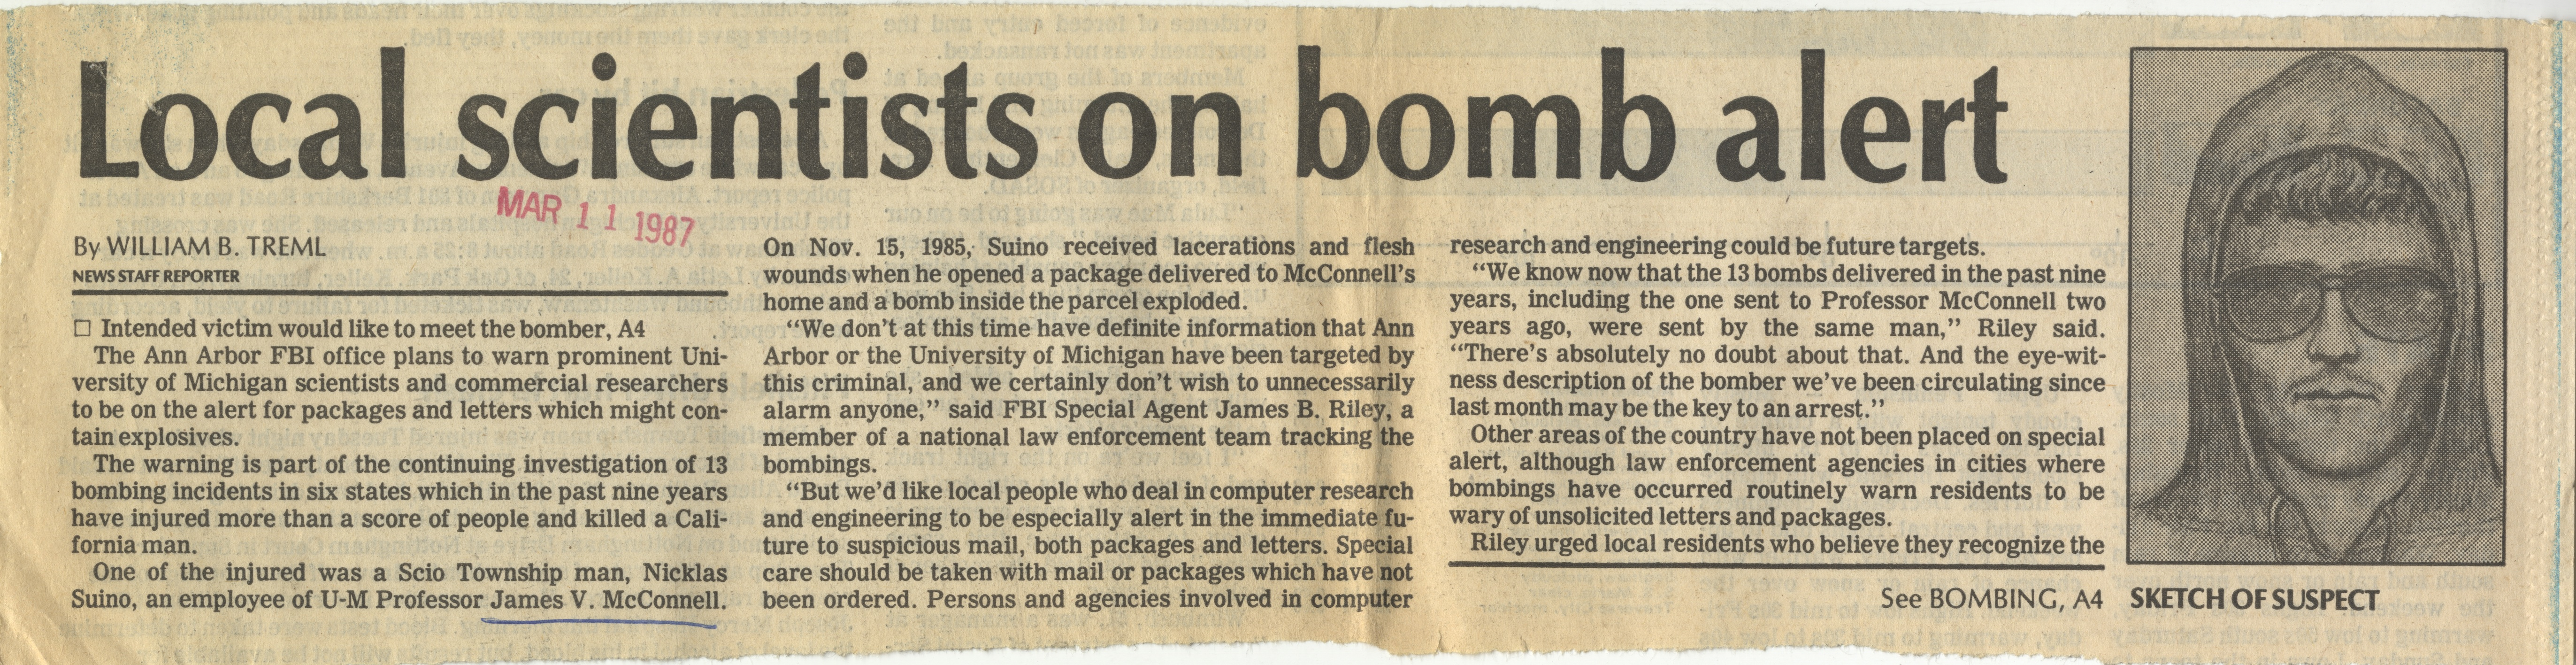 Local Scientists On Bomb Alert image